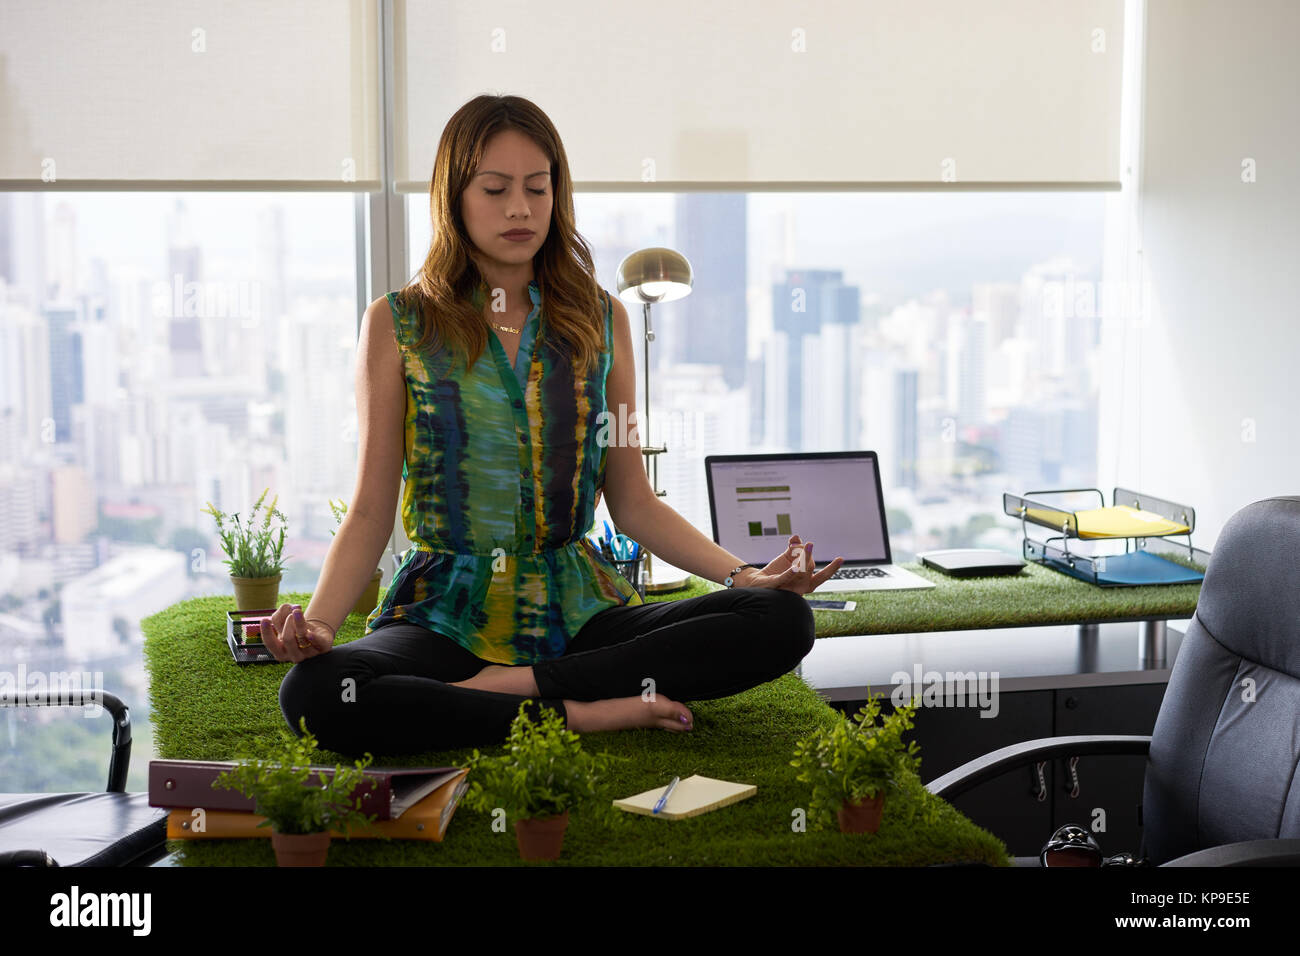 Business Woman Doing Yoga Meditation On Table In Office 2